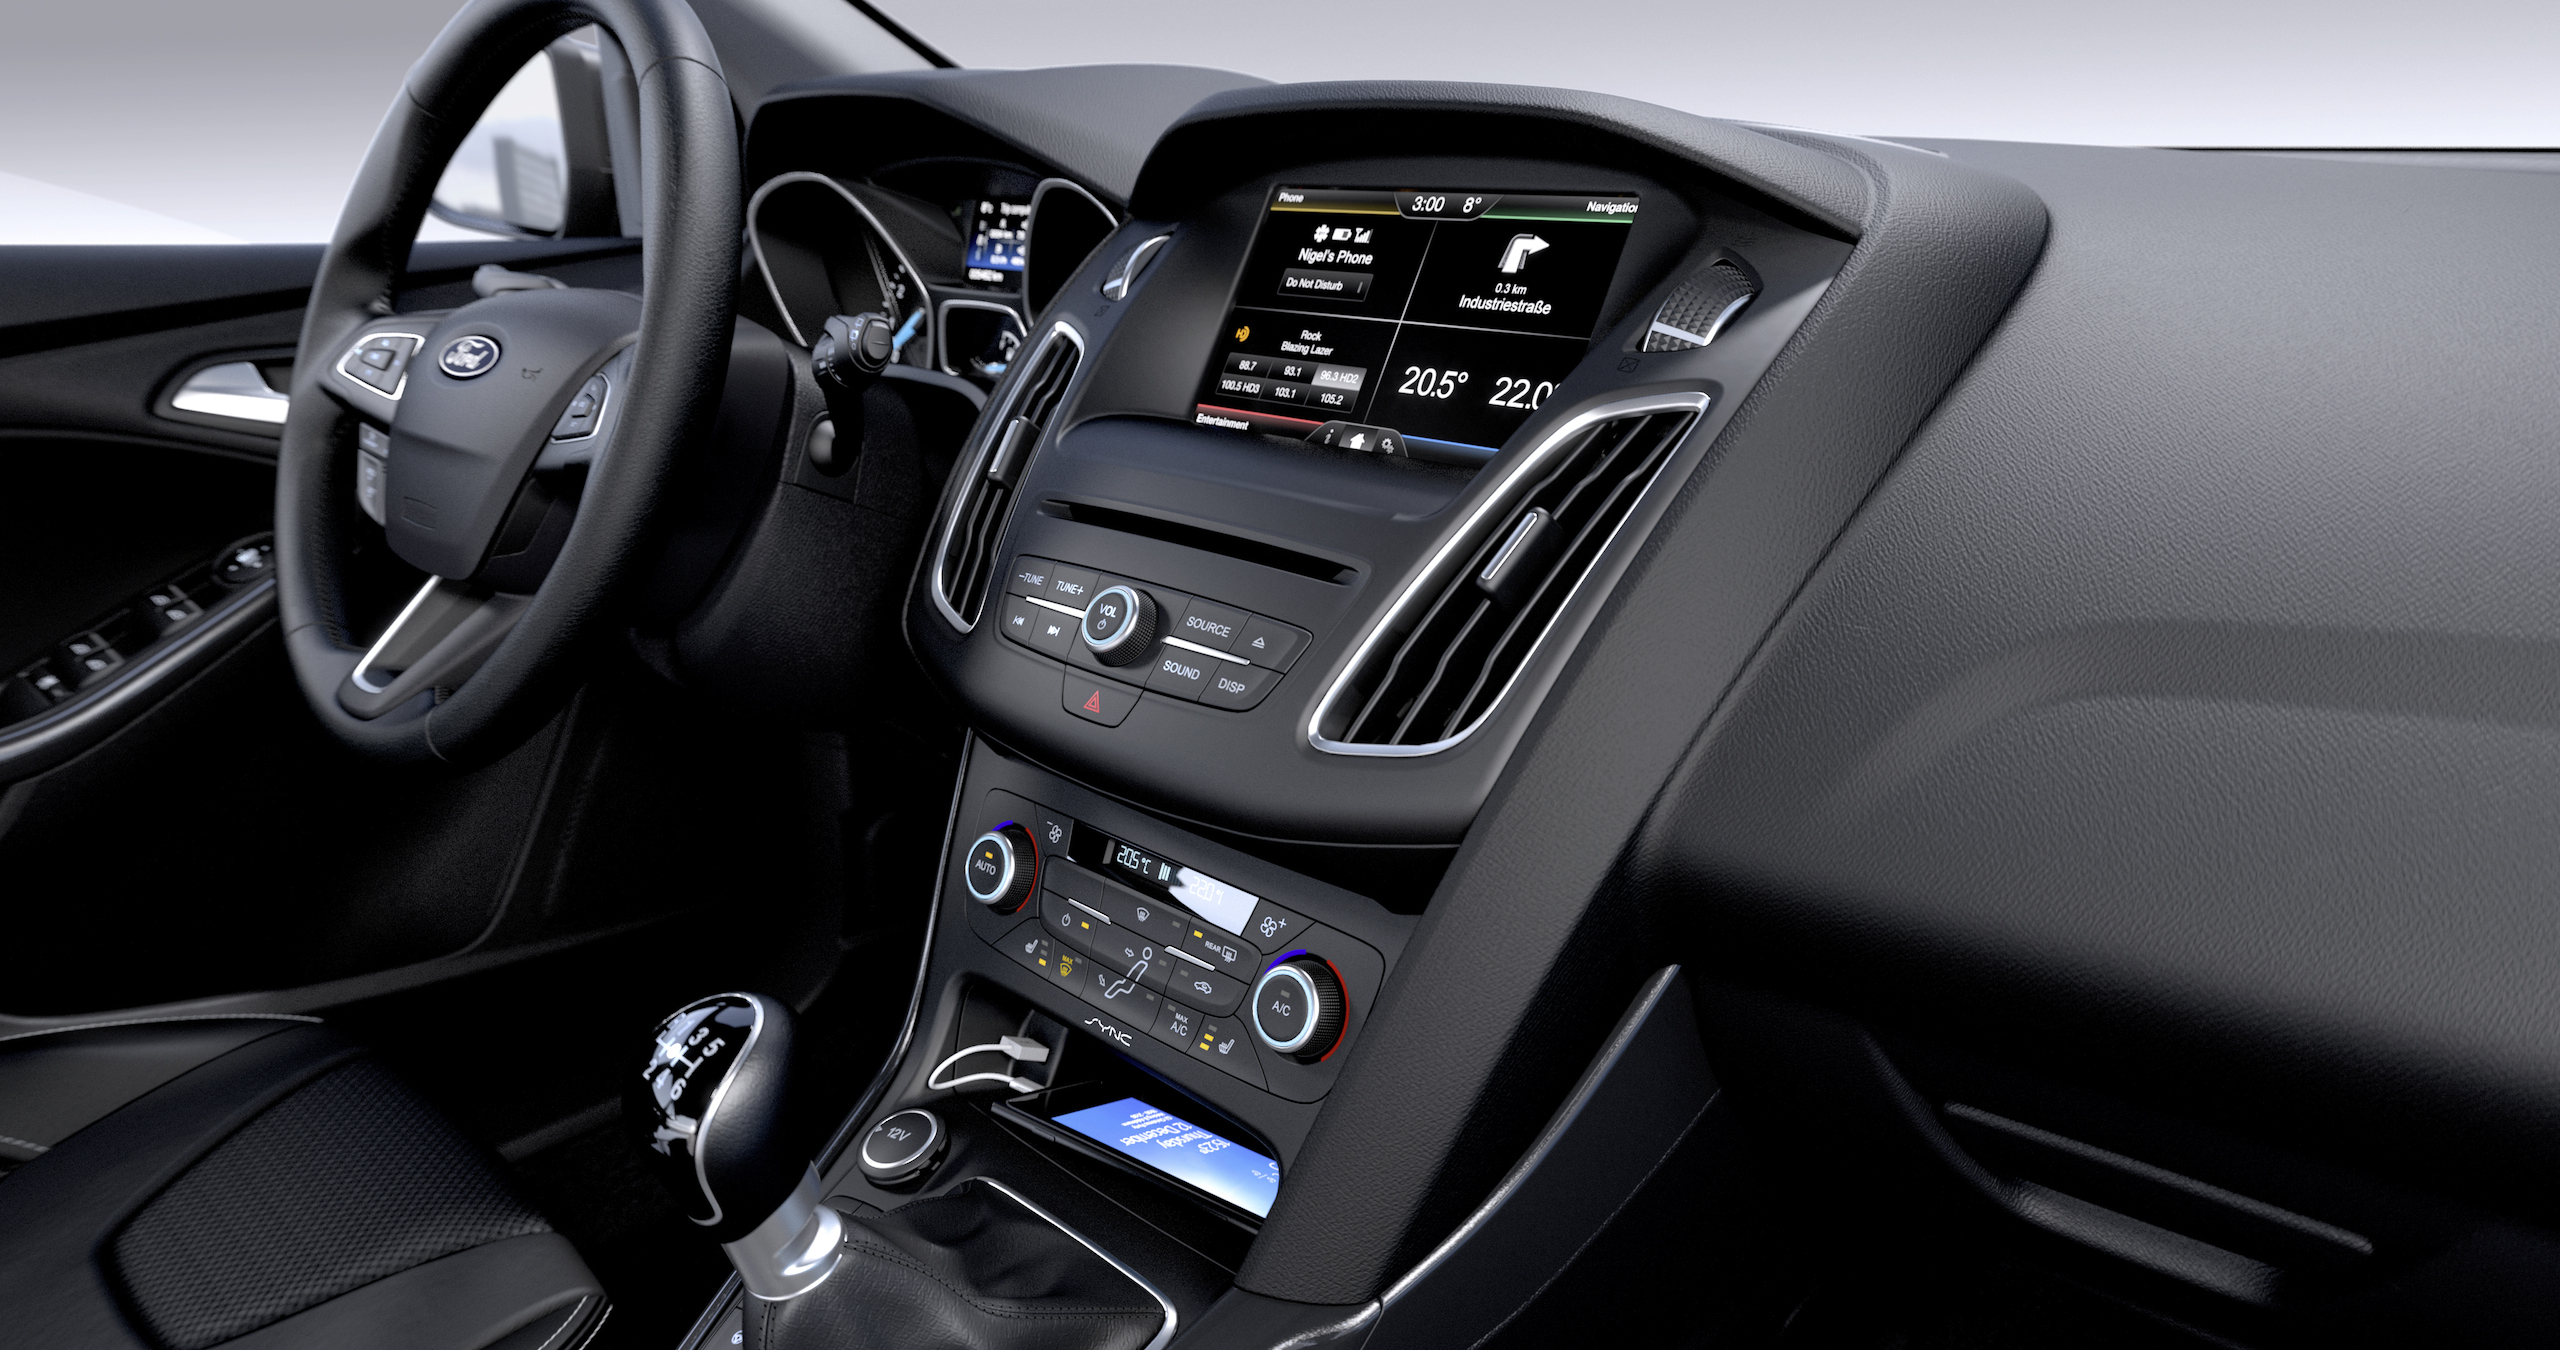 Charming 2014 Ford Focus Facelift Gets Revised Looks And Interior Image #230224 Nice Look